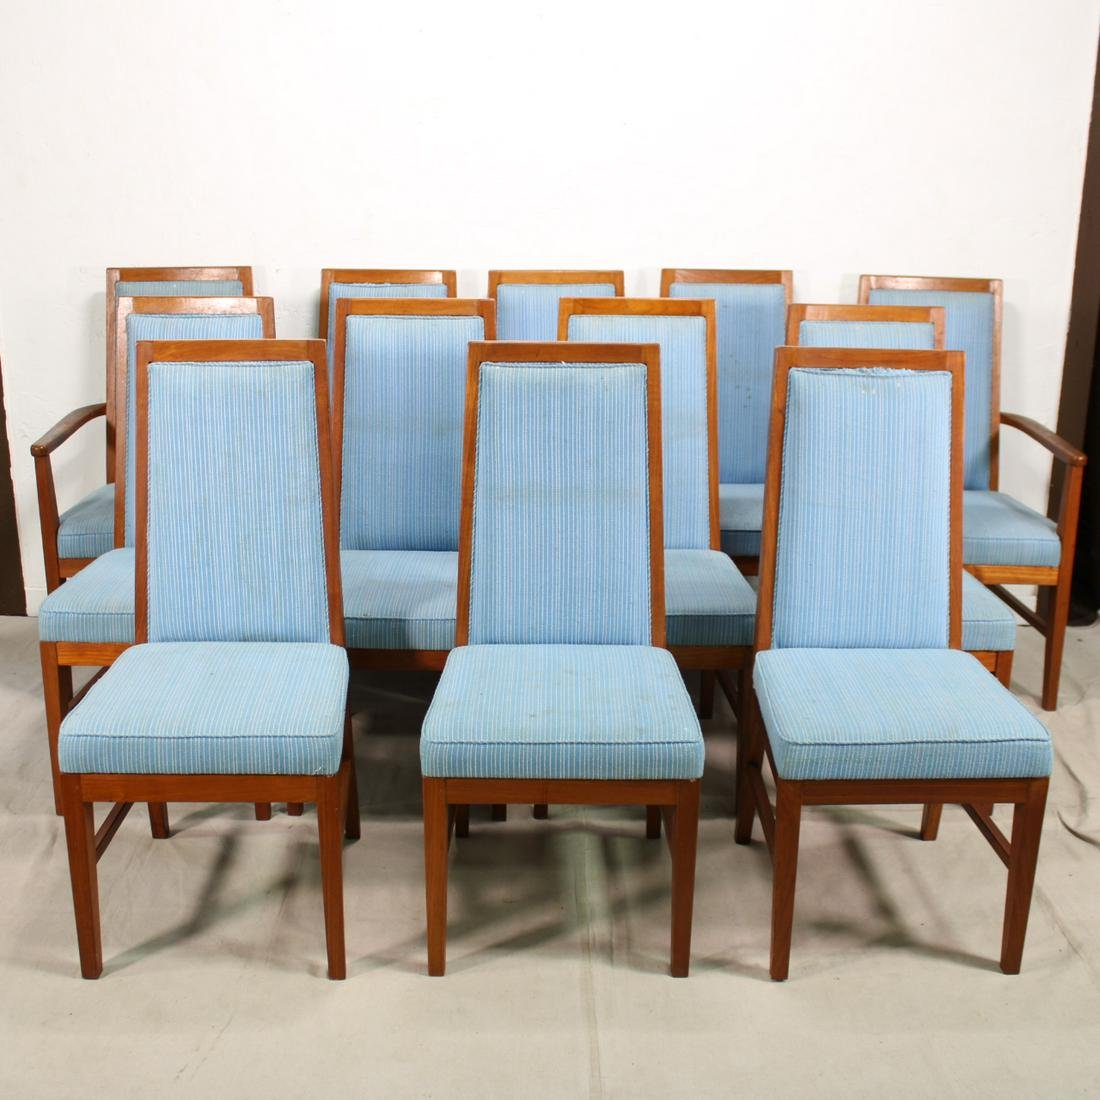 Set of 12 Mid Century Modern Dining Chairs